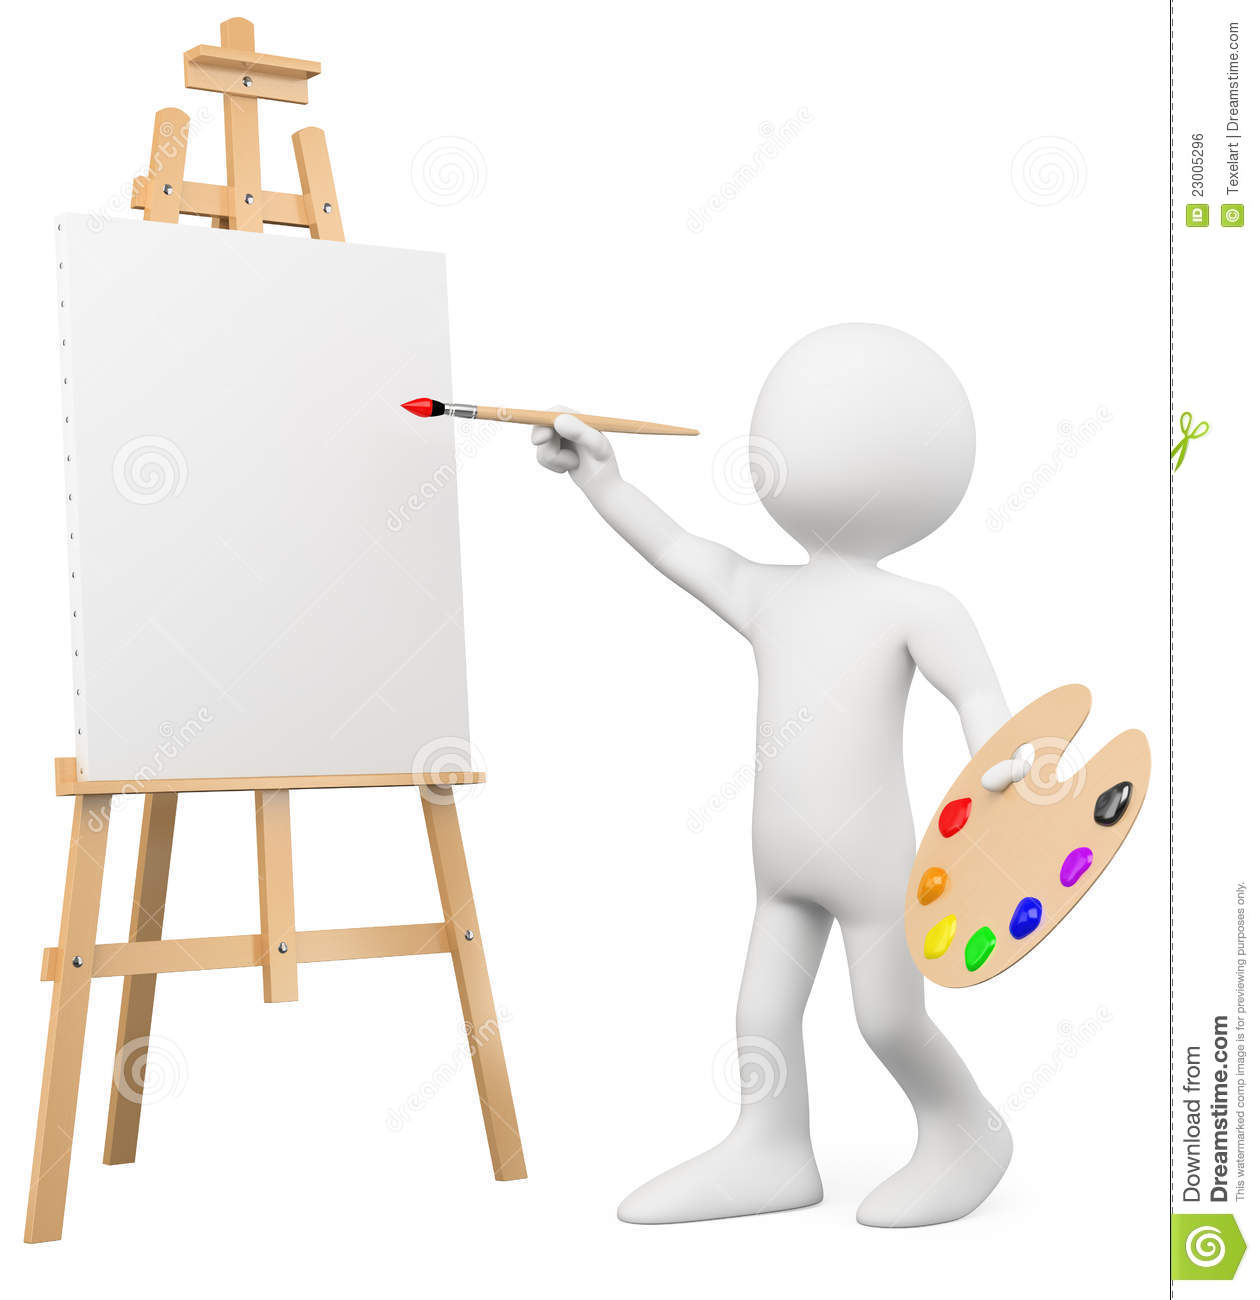 Gallery For Art Easel Clipart Displaying 19 Images For Art Easel